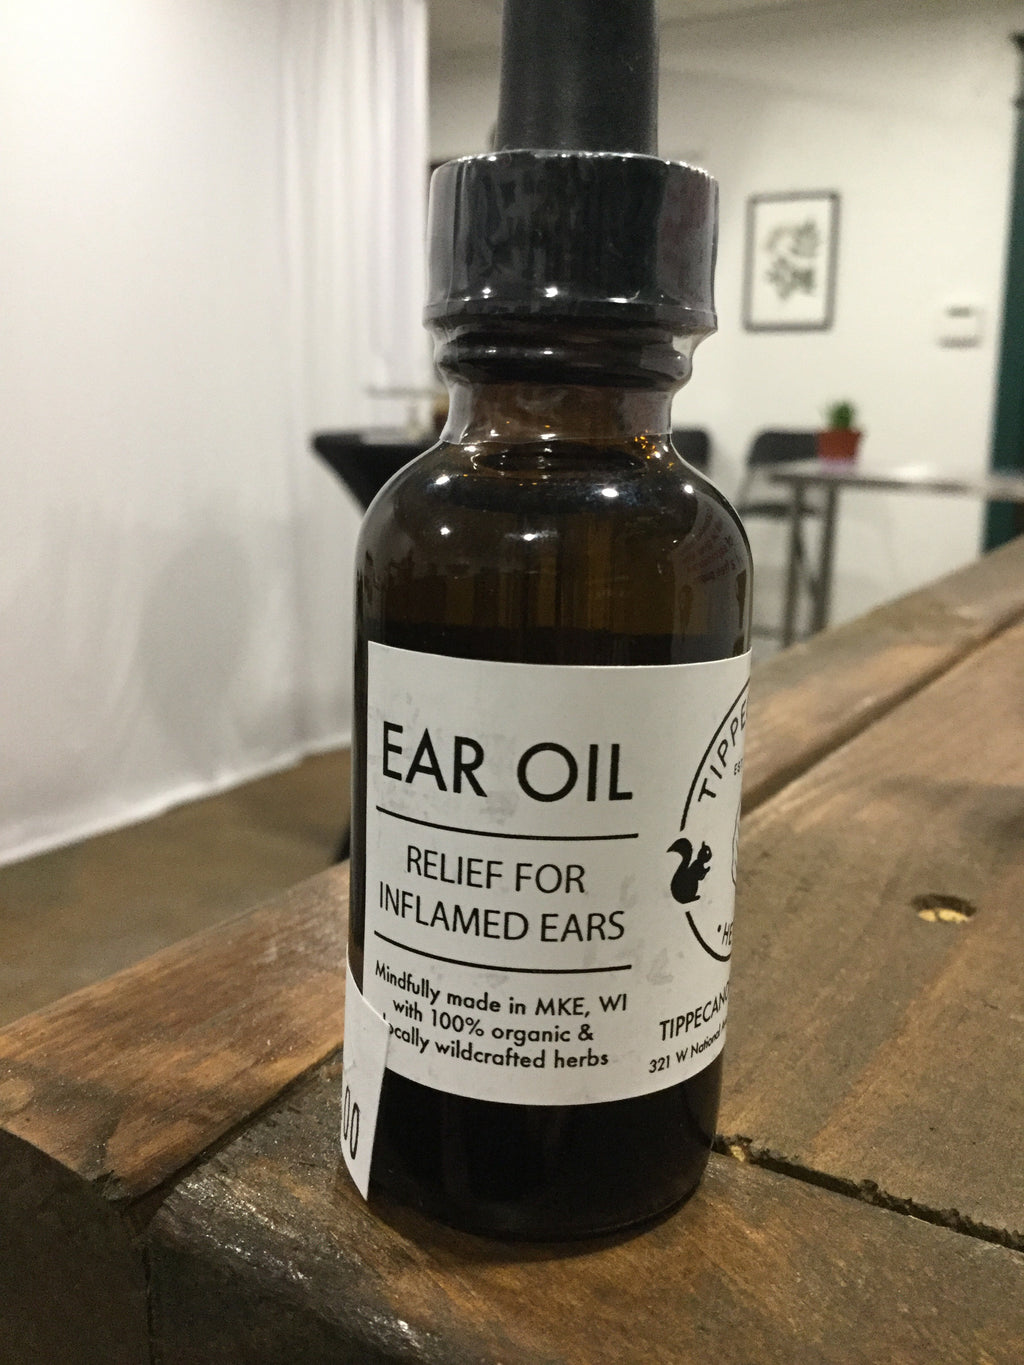 Tippiecanoe Ear Oil - Safe for kids and all natural